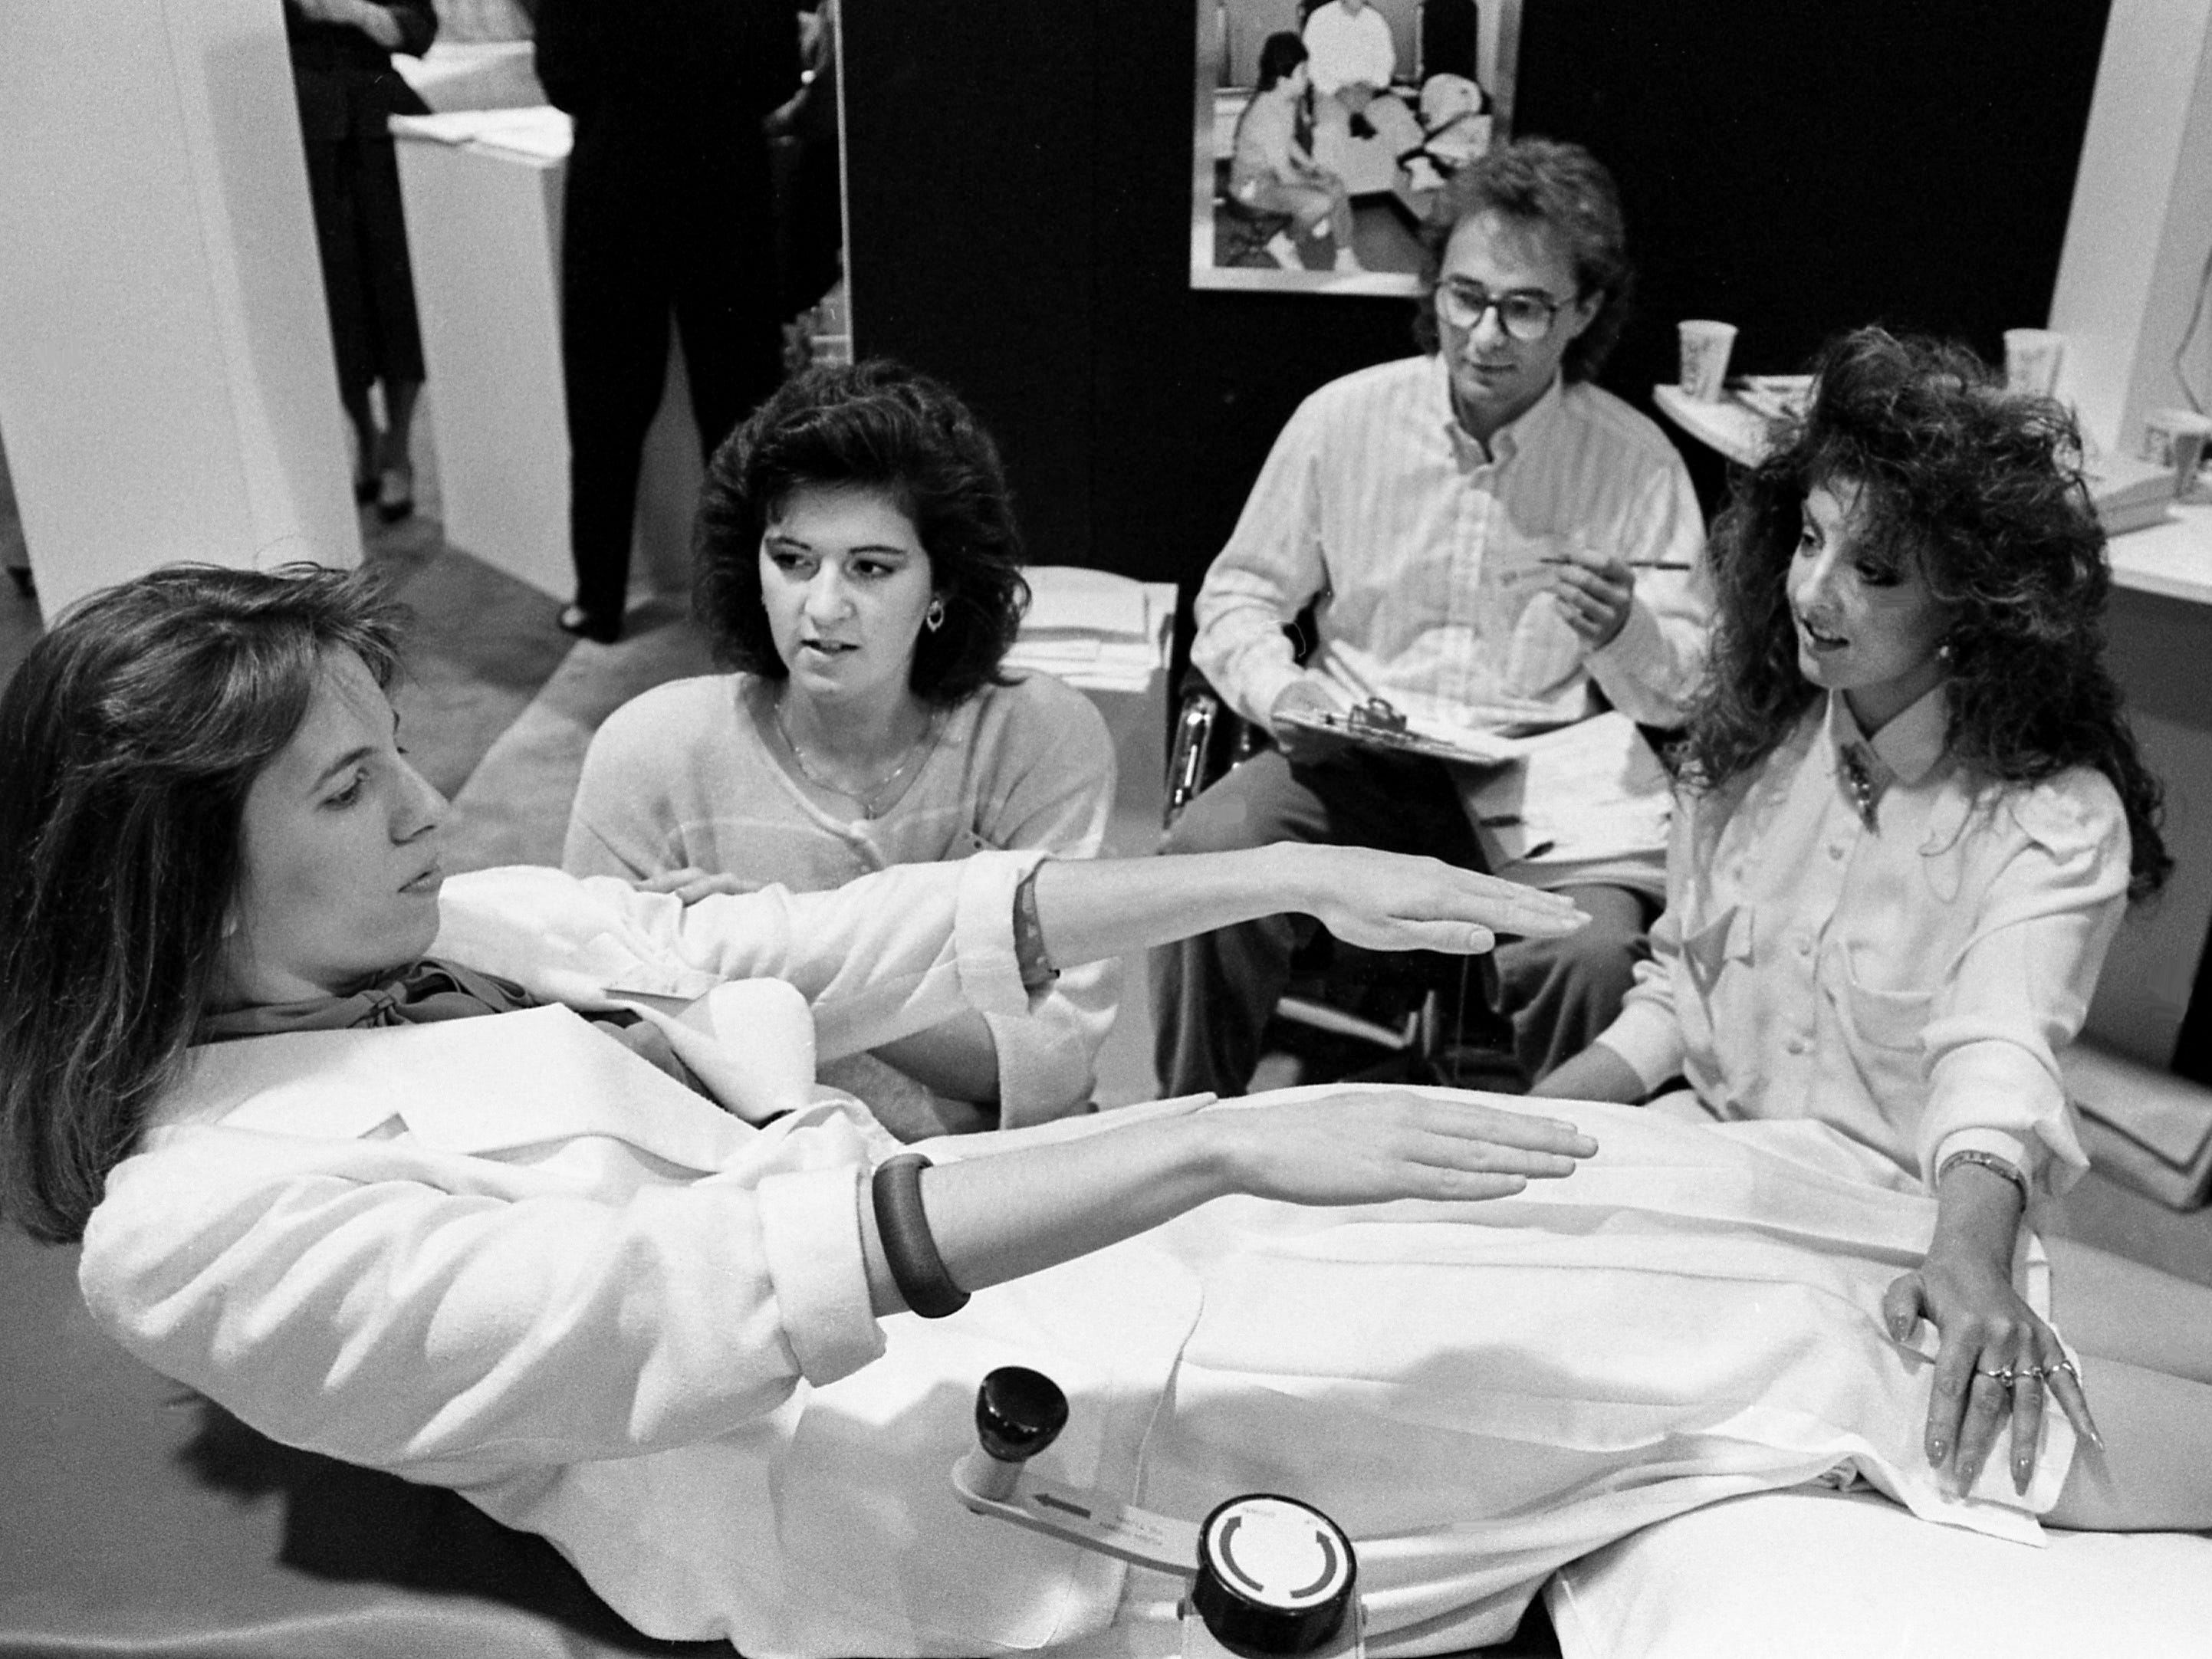 Nancy Griswold, left, undergoes the body composition, flexibility and strength test offered by West Side Hospital during the third annual Southern Women's Show at the Nashville Convention Center on March 17, 1989. Administering the test are physical therapist Kathryn Lindamood, second from left, and physical therapist assistant students Mike Curtis and Raney Jewell.